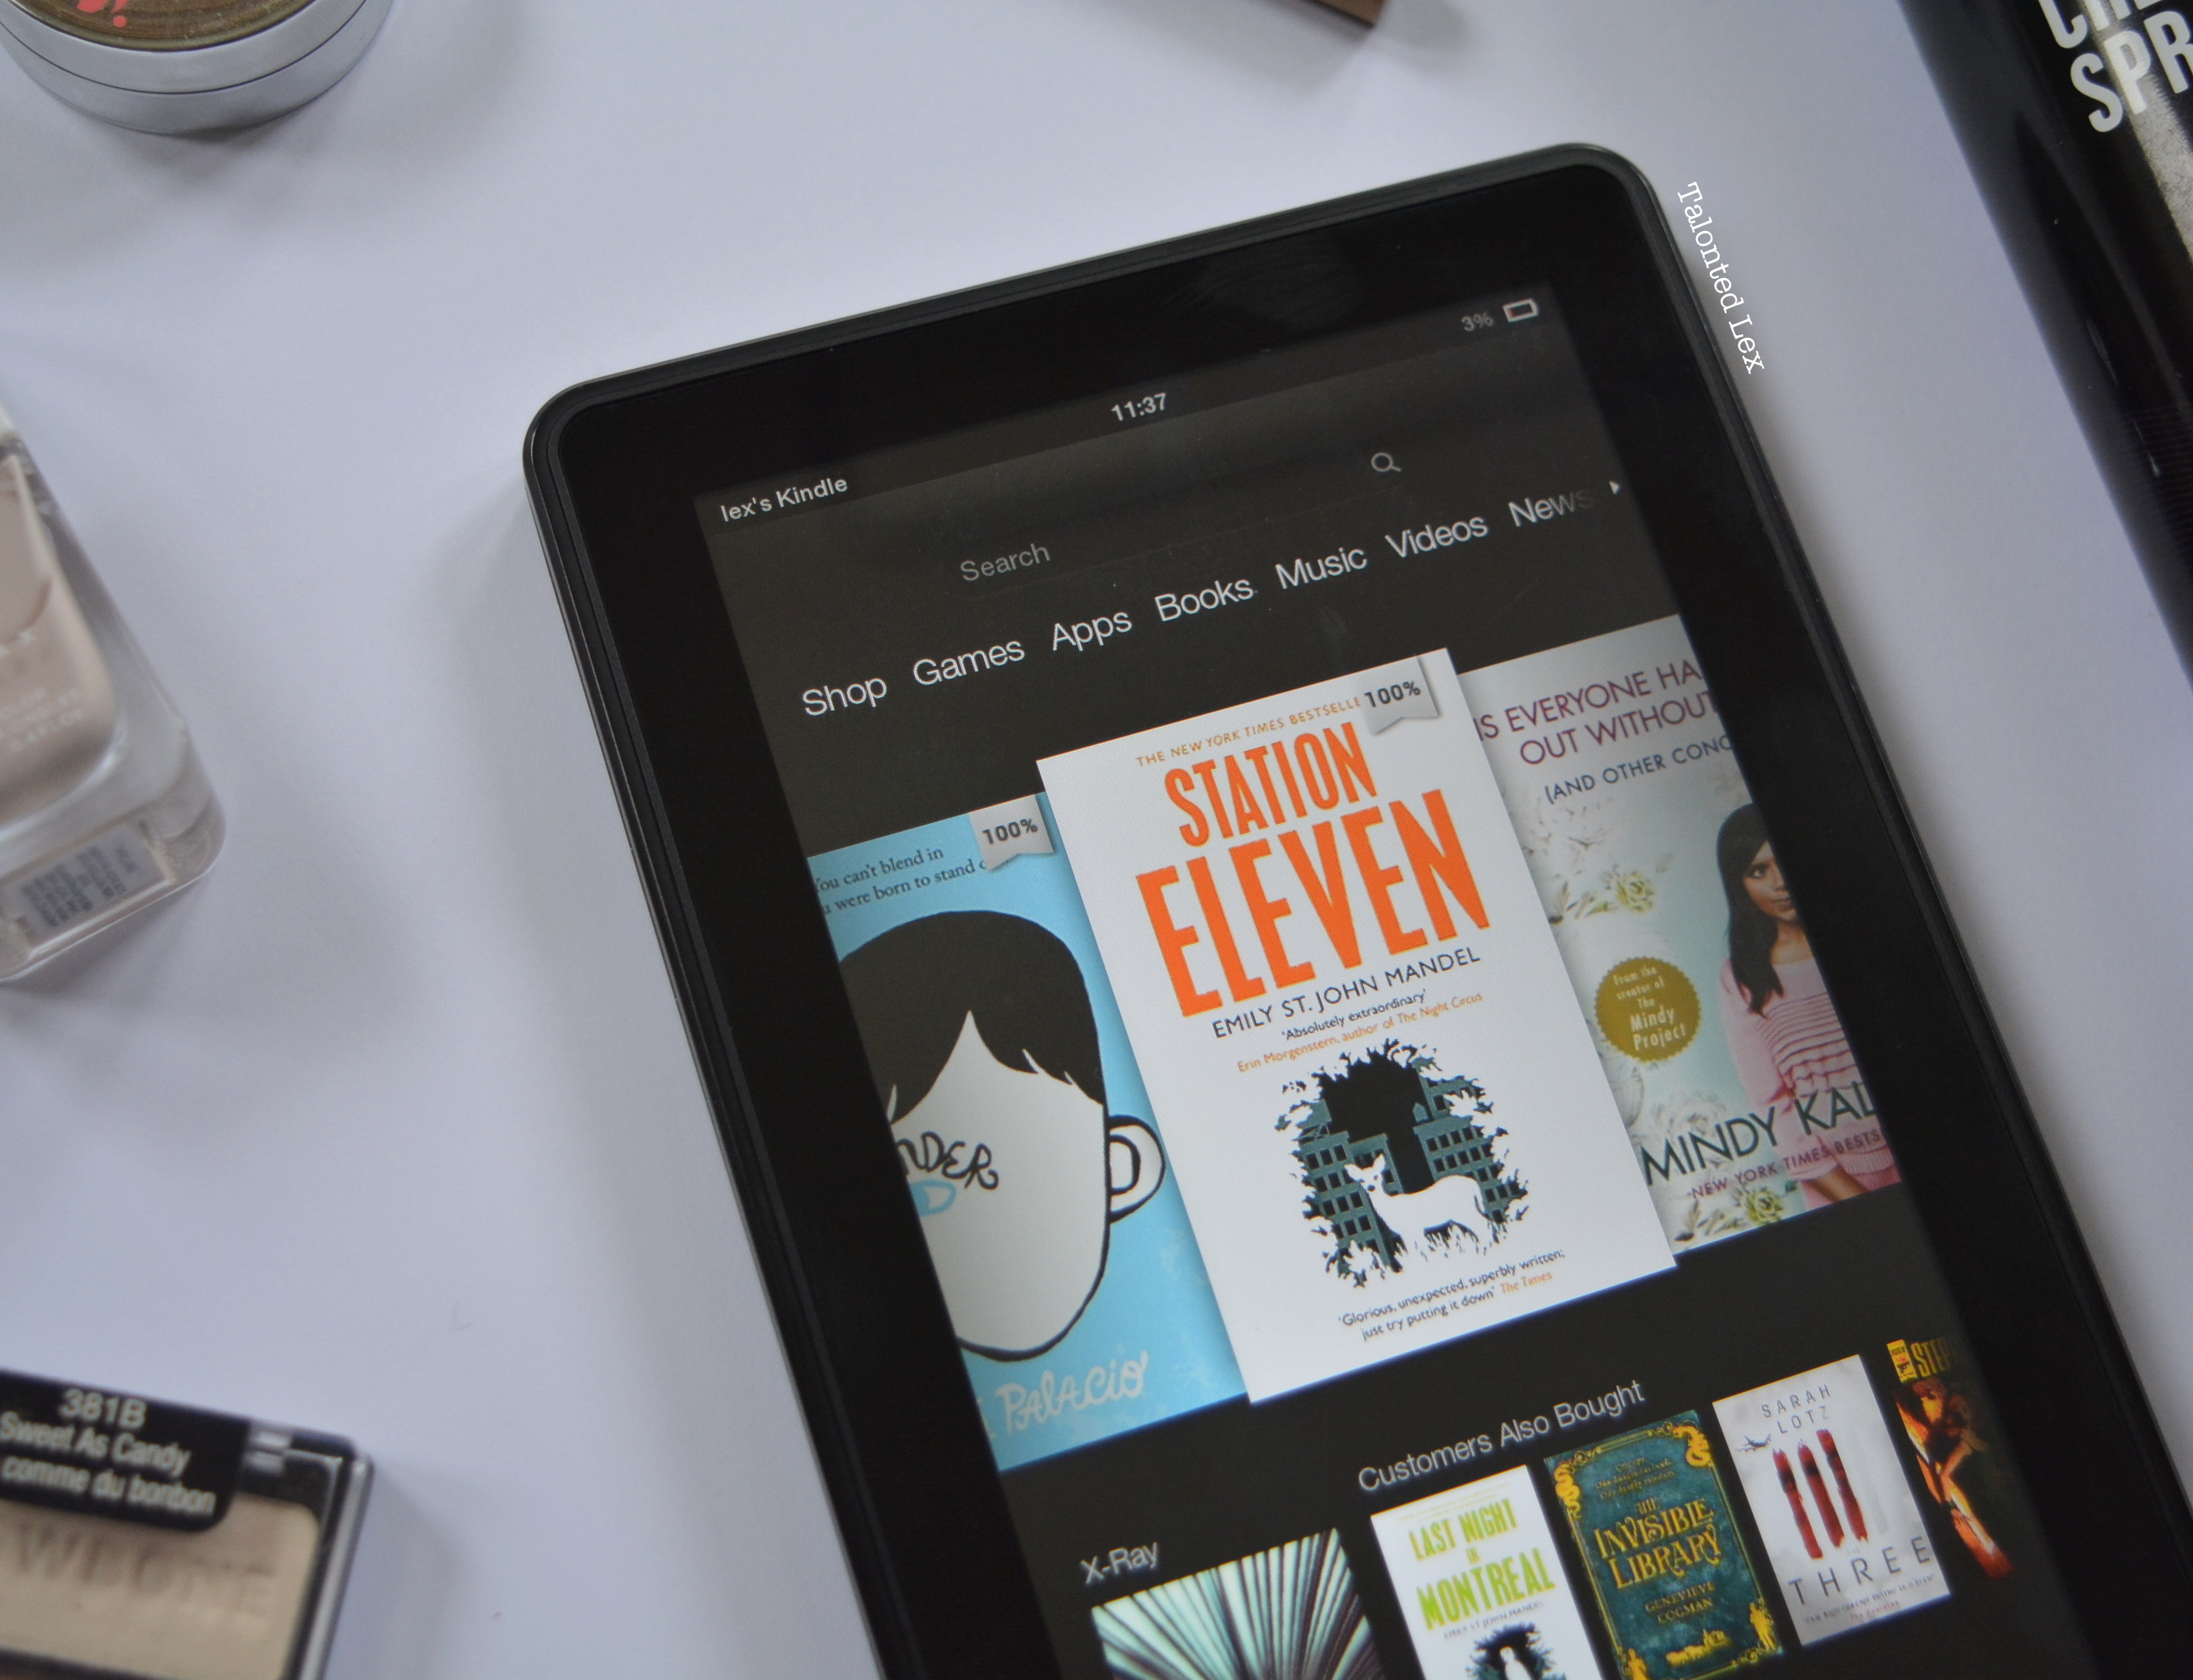 Talonted-Lex-August-2015-favourites-kindle-station-eleven-wonder-mindy-kaling